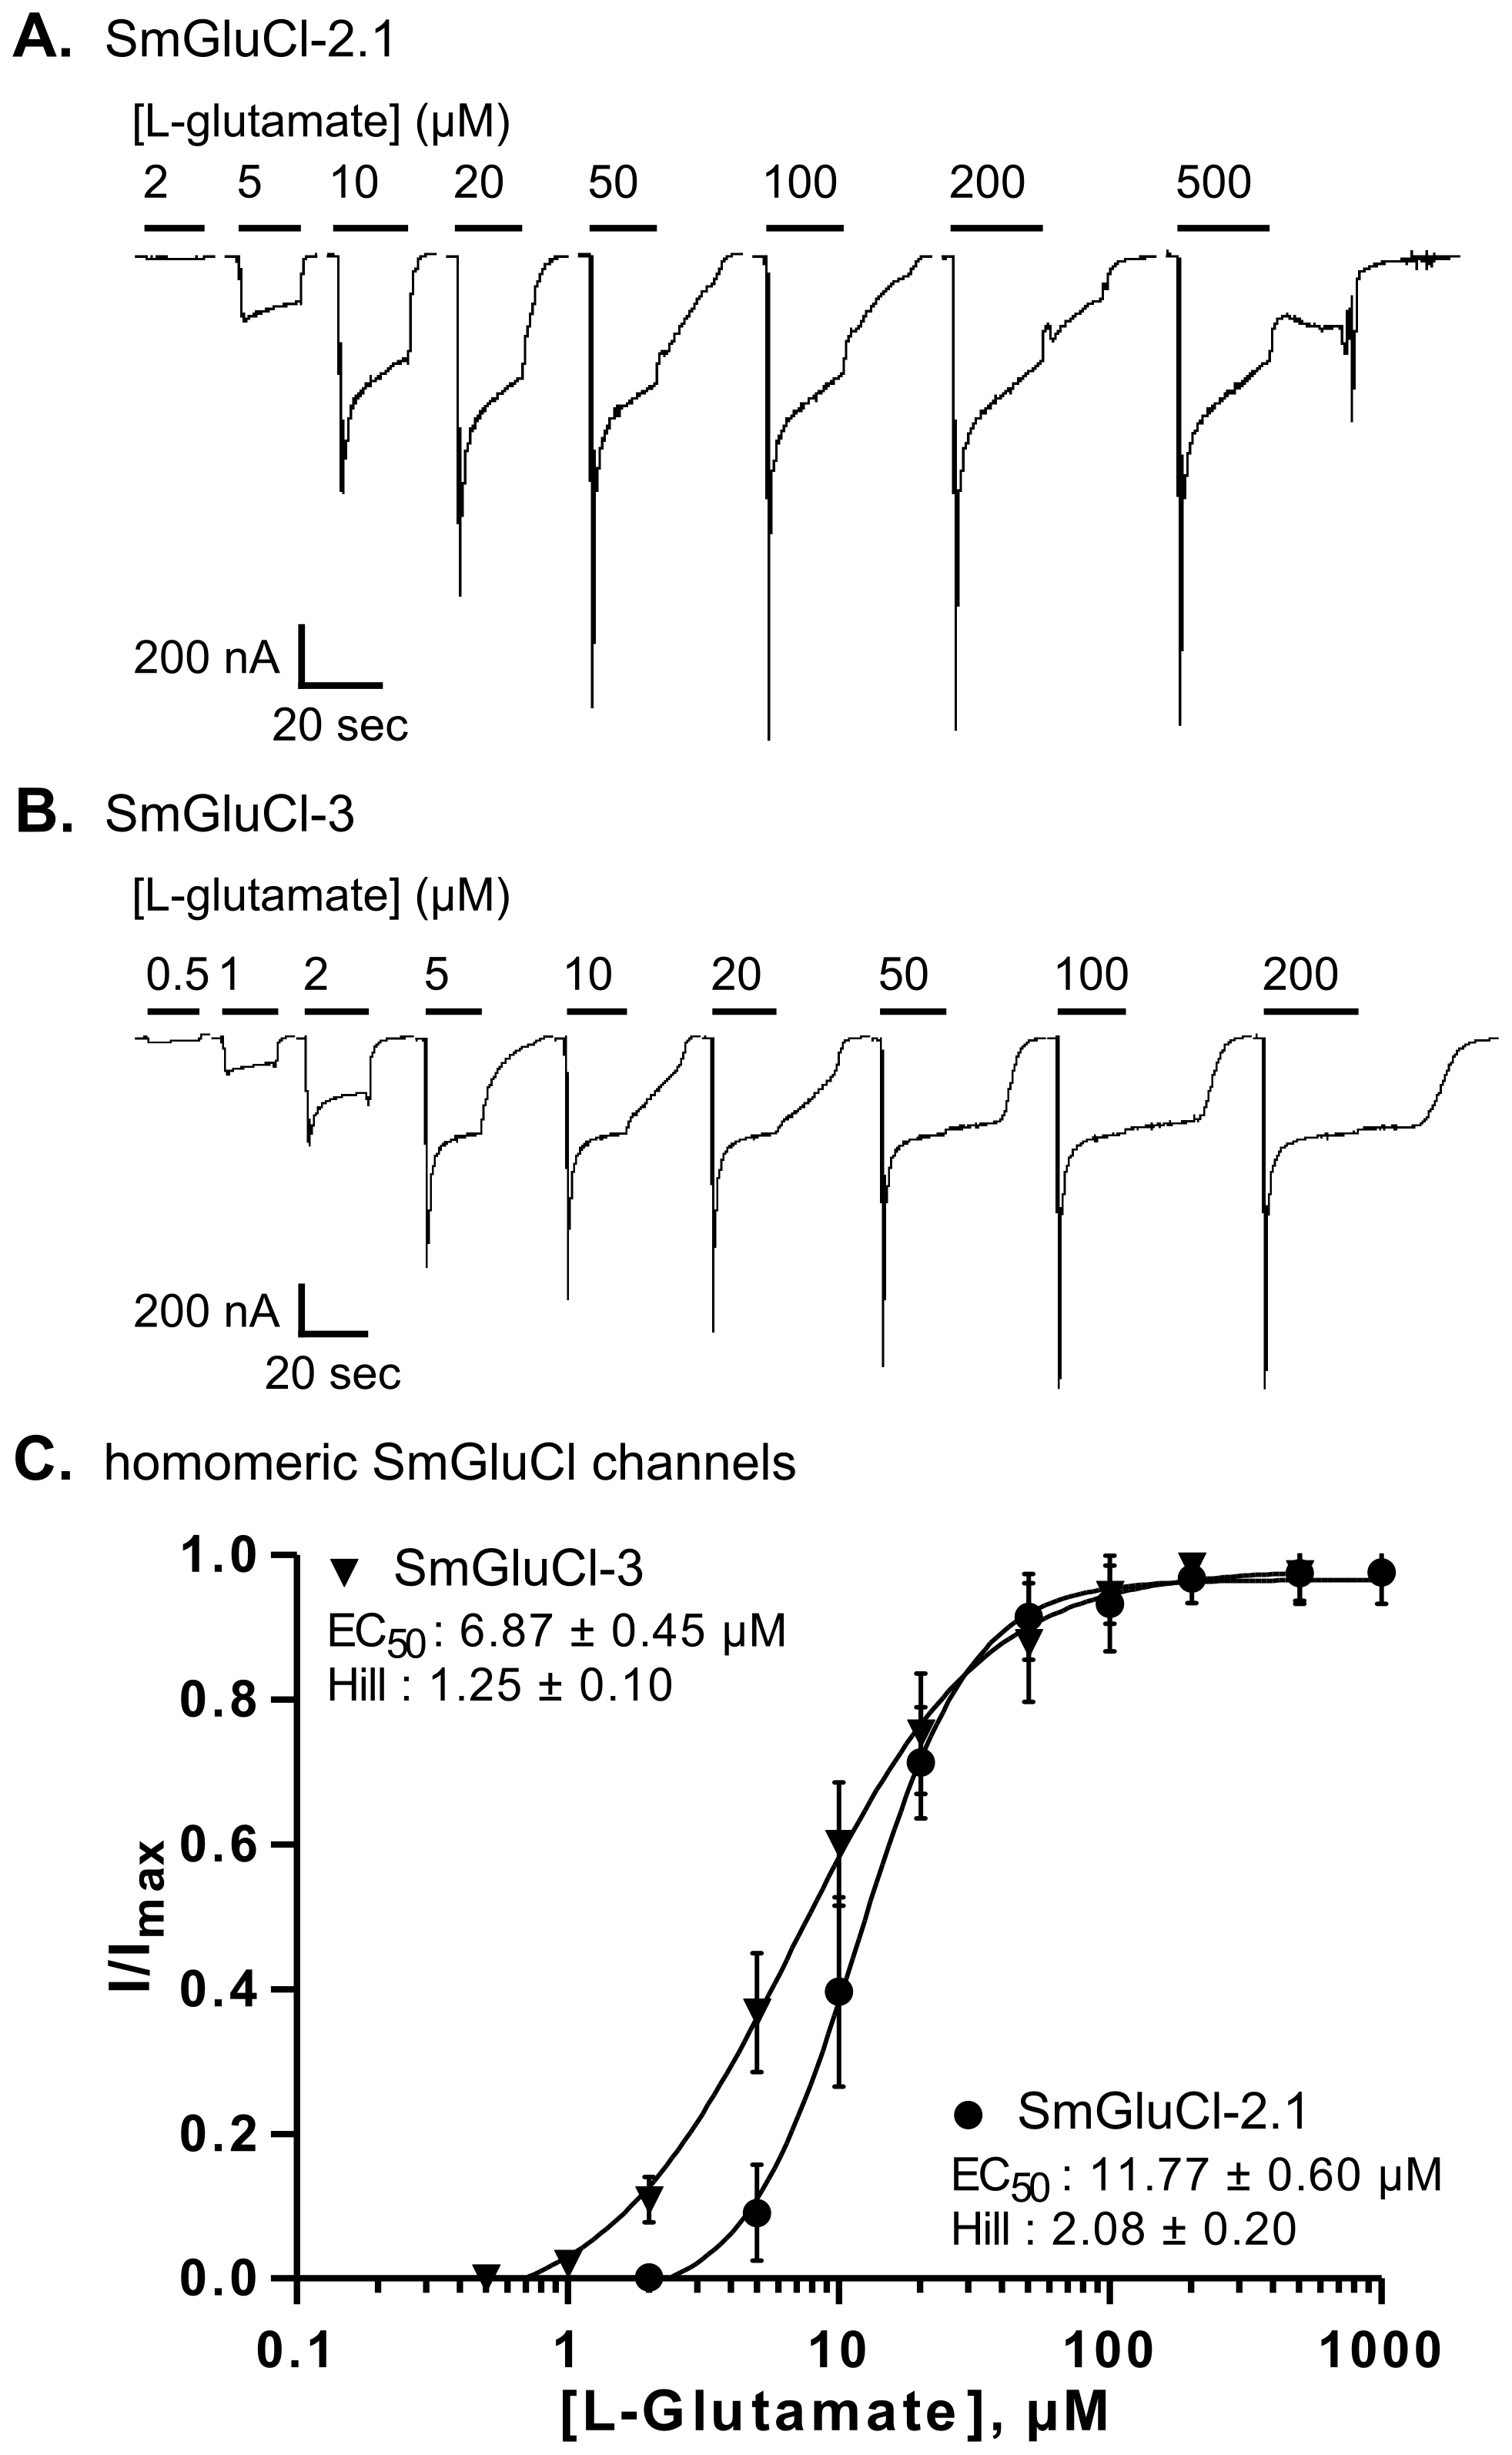 L-glutamate concentration-response relationships of SmGluCl-2.1 and SmGluCl-3 homo-oligomers in <i>Xenopus</i> oocytes.